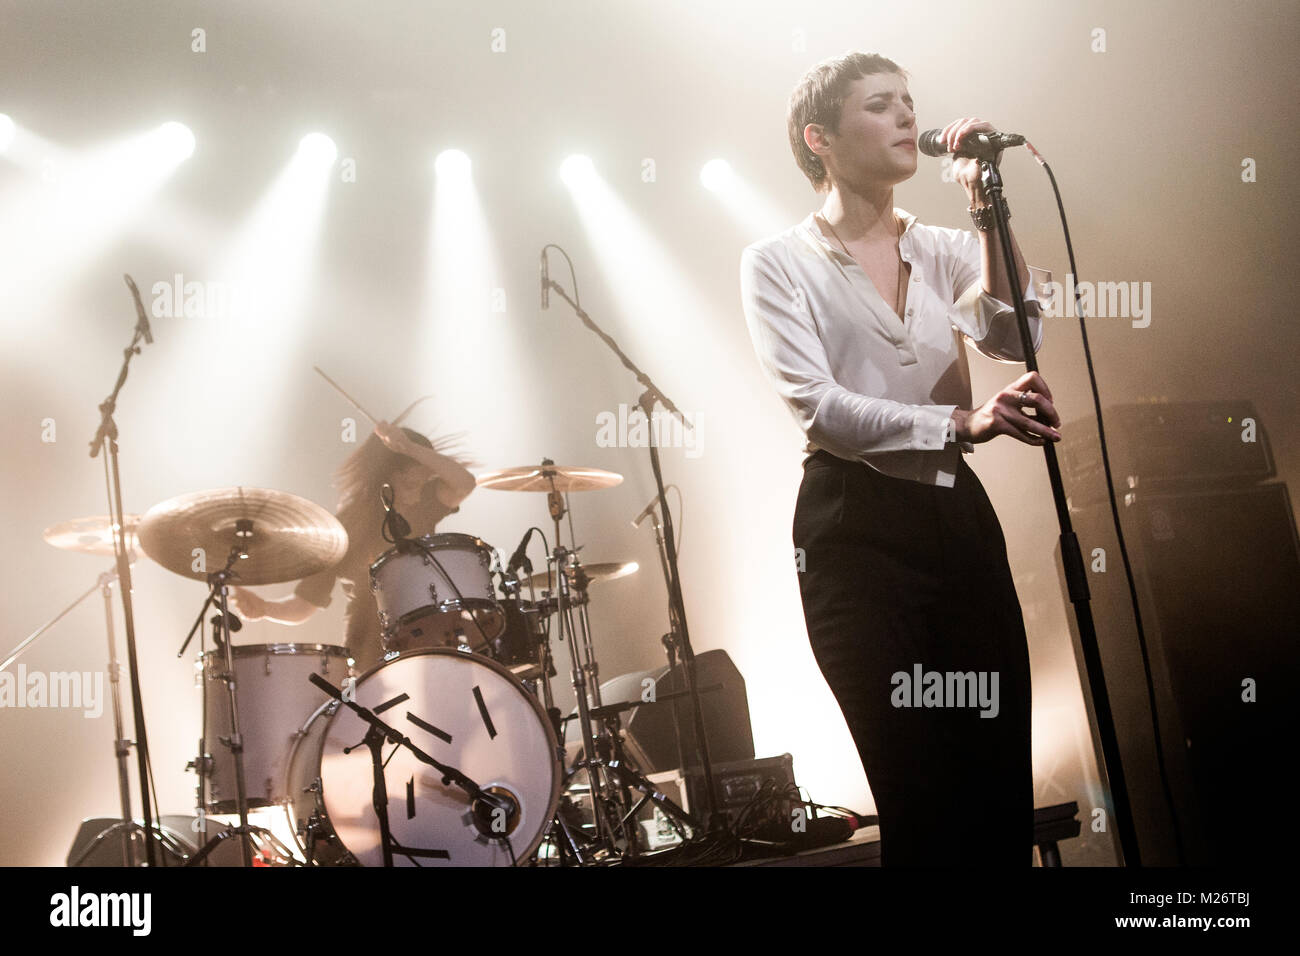 Savages Band Stock Photos & Savages Band Stock Images - Alamy